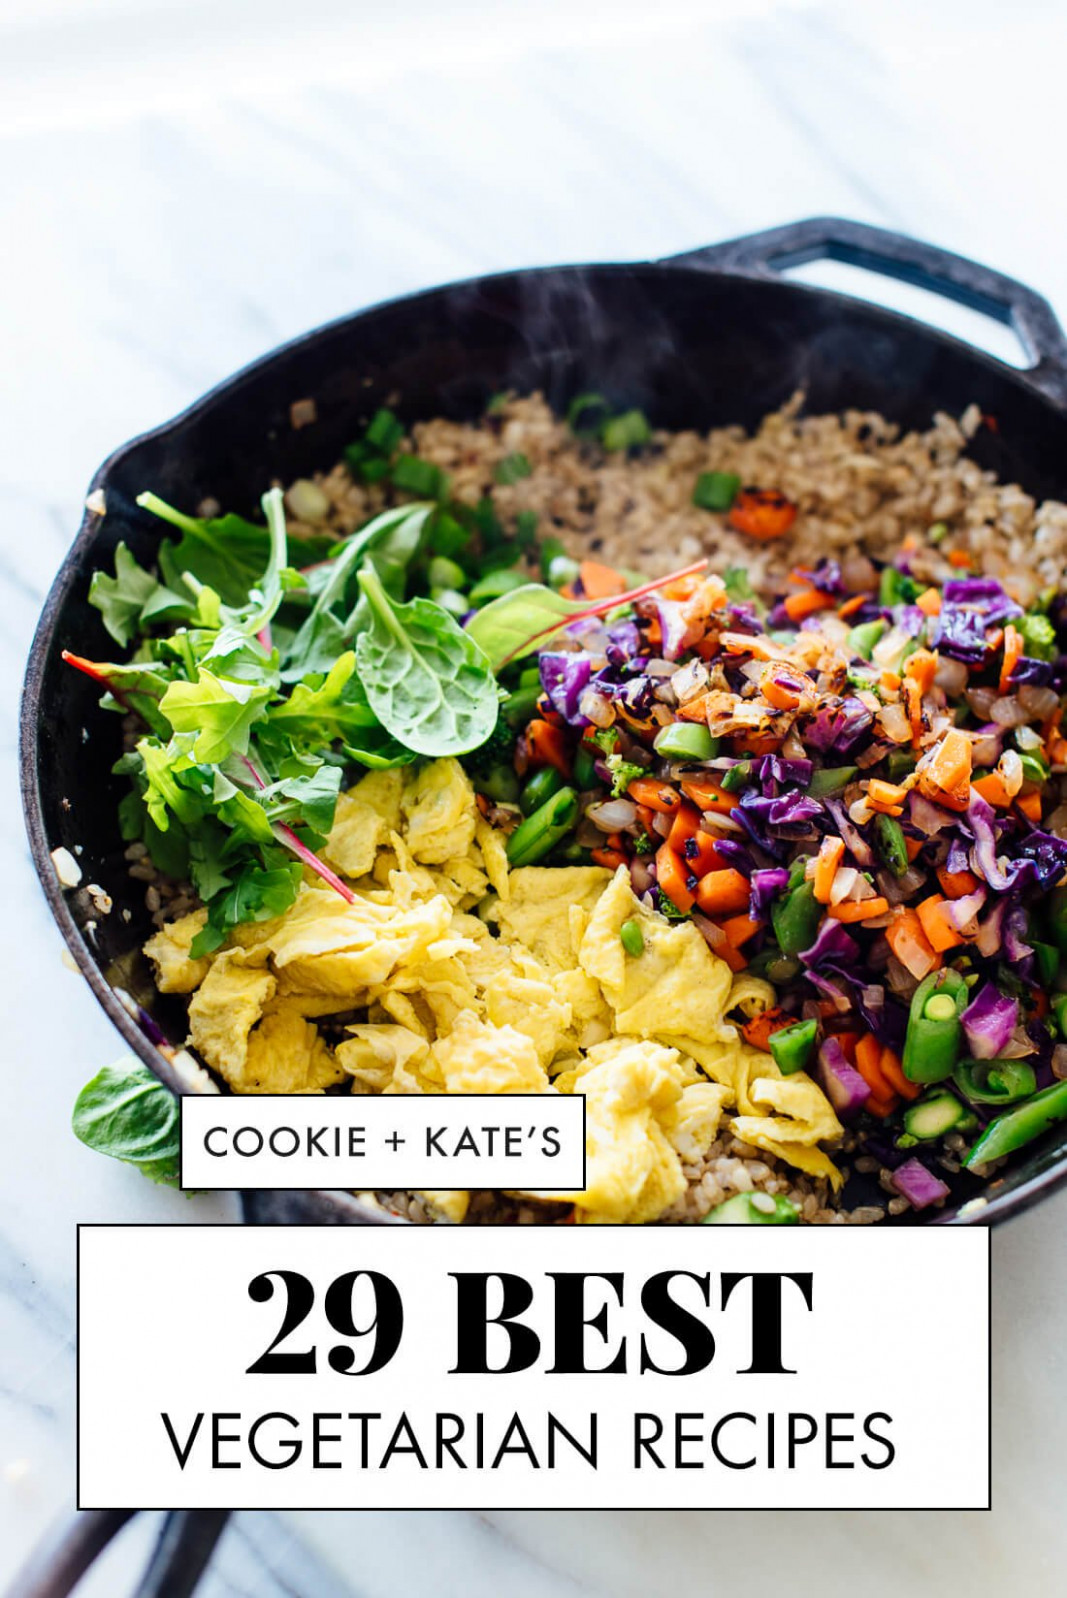 15 Best Vegetarian Recipes - Cookie and Kate - food recipes classic wow